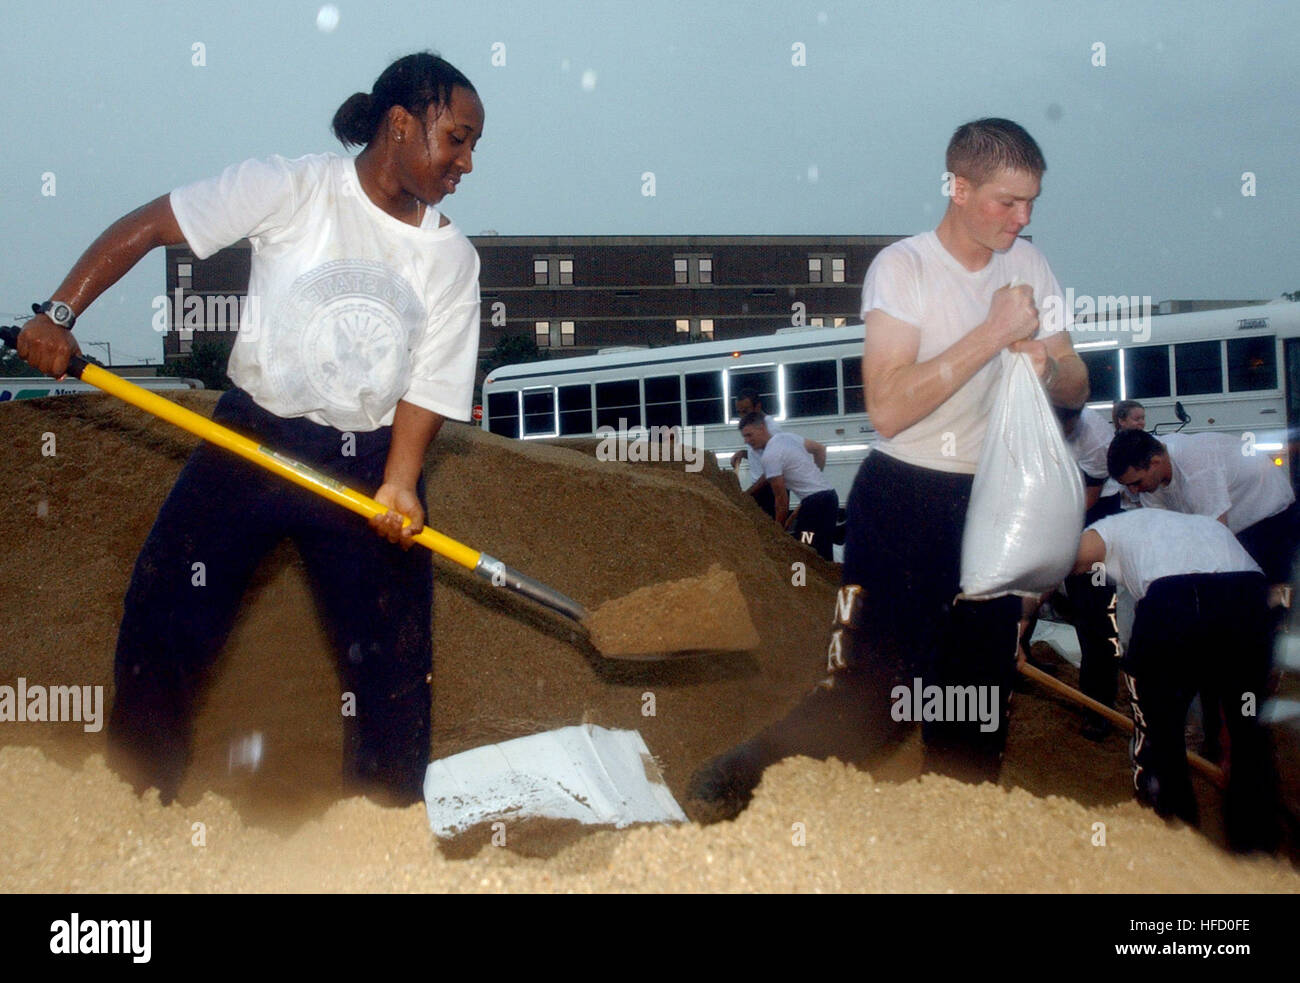 Seaman Kayla Days and Seaman Alex Mills, students at Naval Hospital Corps School, fill sandbags for delivery to Stock Photo